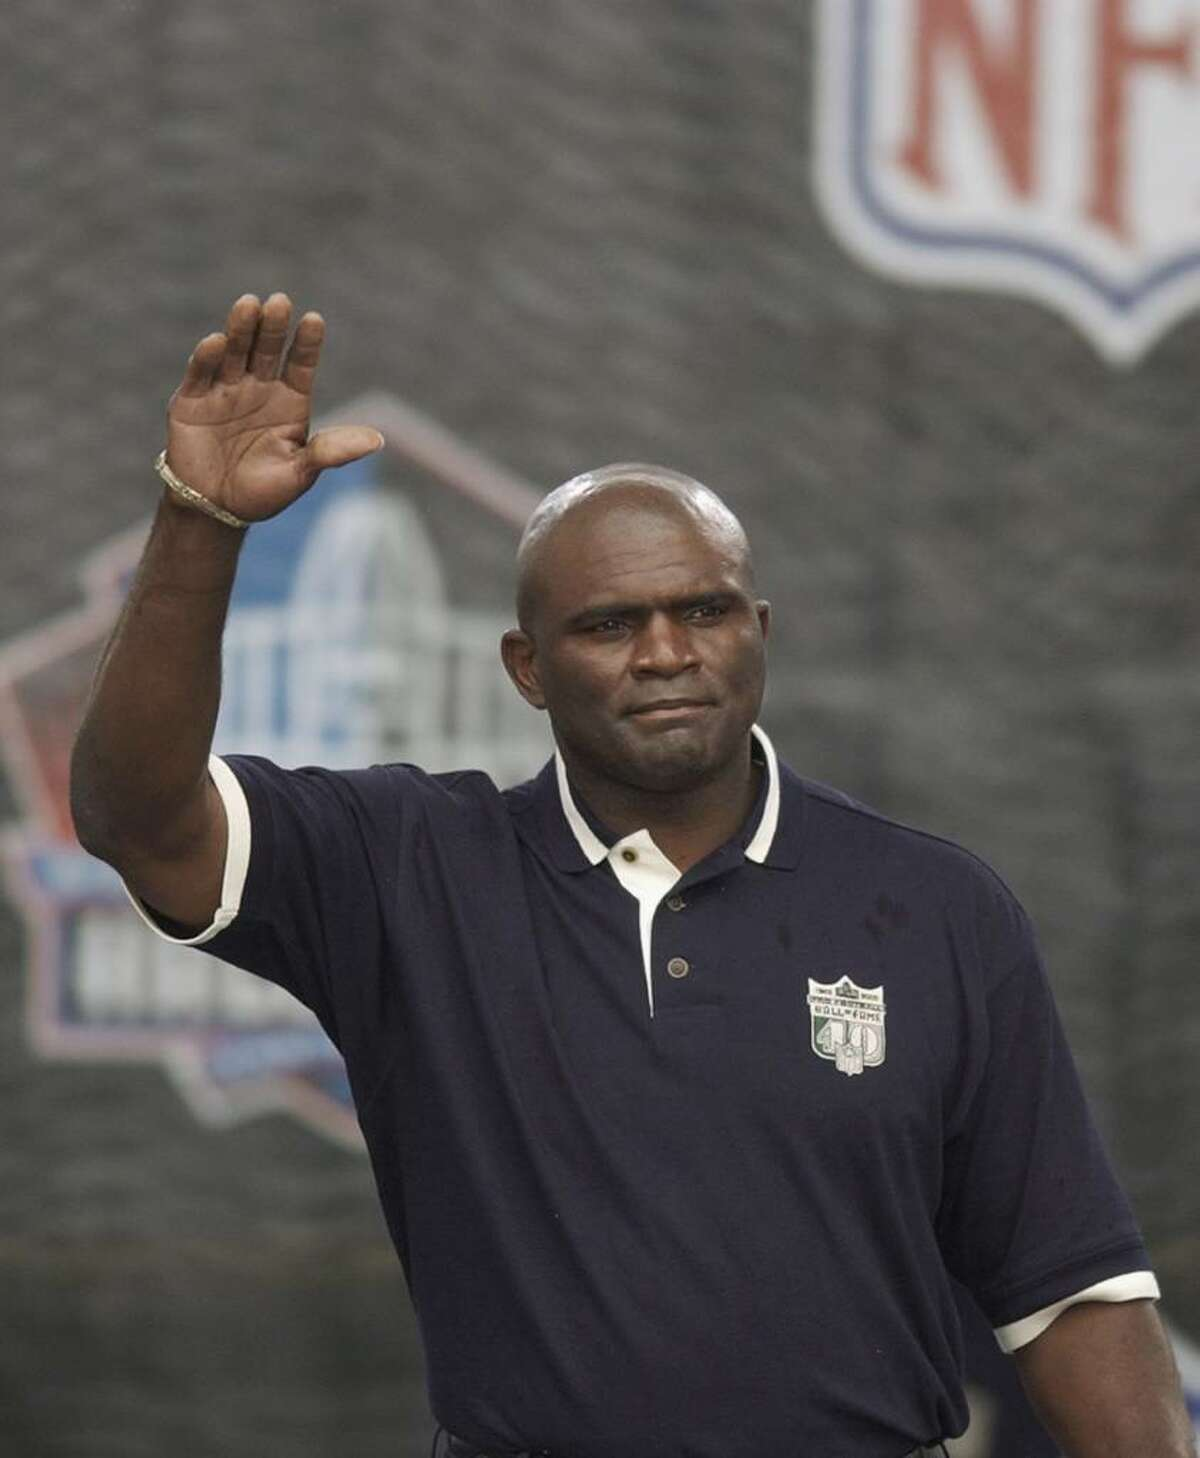 CANTON, OH - AUGUST 3: Pro Football Hall of Famer (Class of 1999) Lawrence Taylor waves as he is introduced during the 2003 NFL Hall of Fame Induction ceremony on August 3, 2003 in Canton, Ohio. (Photo by David Maxwell/Getty Images)